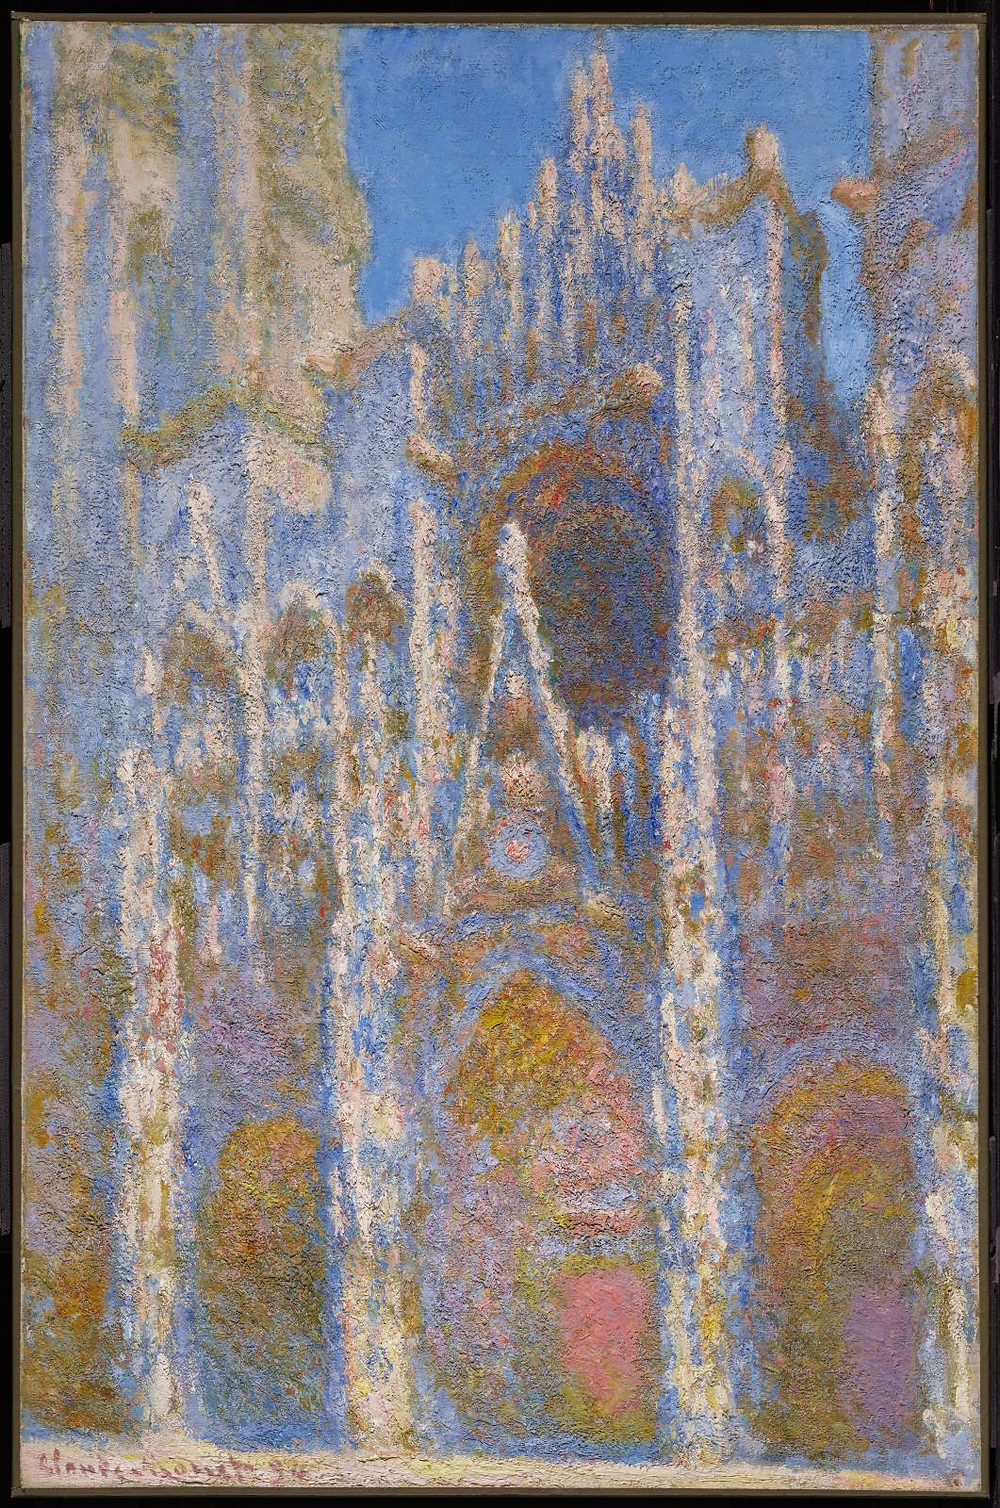 1 of 30 studies Claude Monet made of Rouen's cathedral. One is in the Rouen Museum of Fine Arts